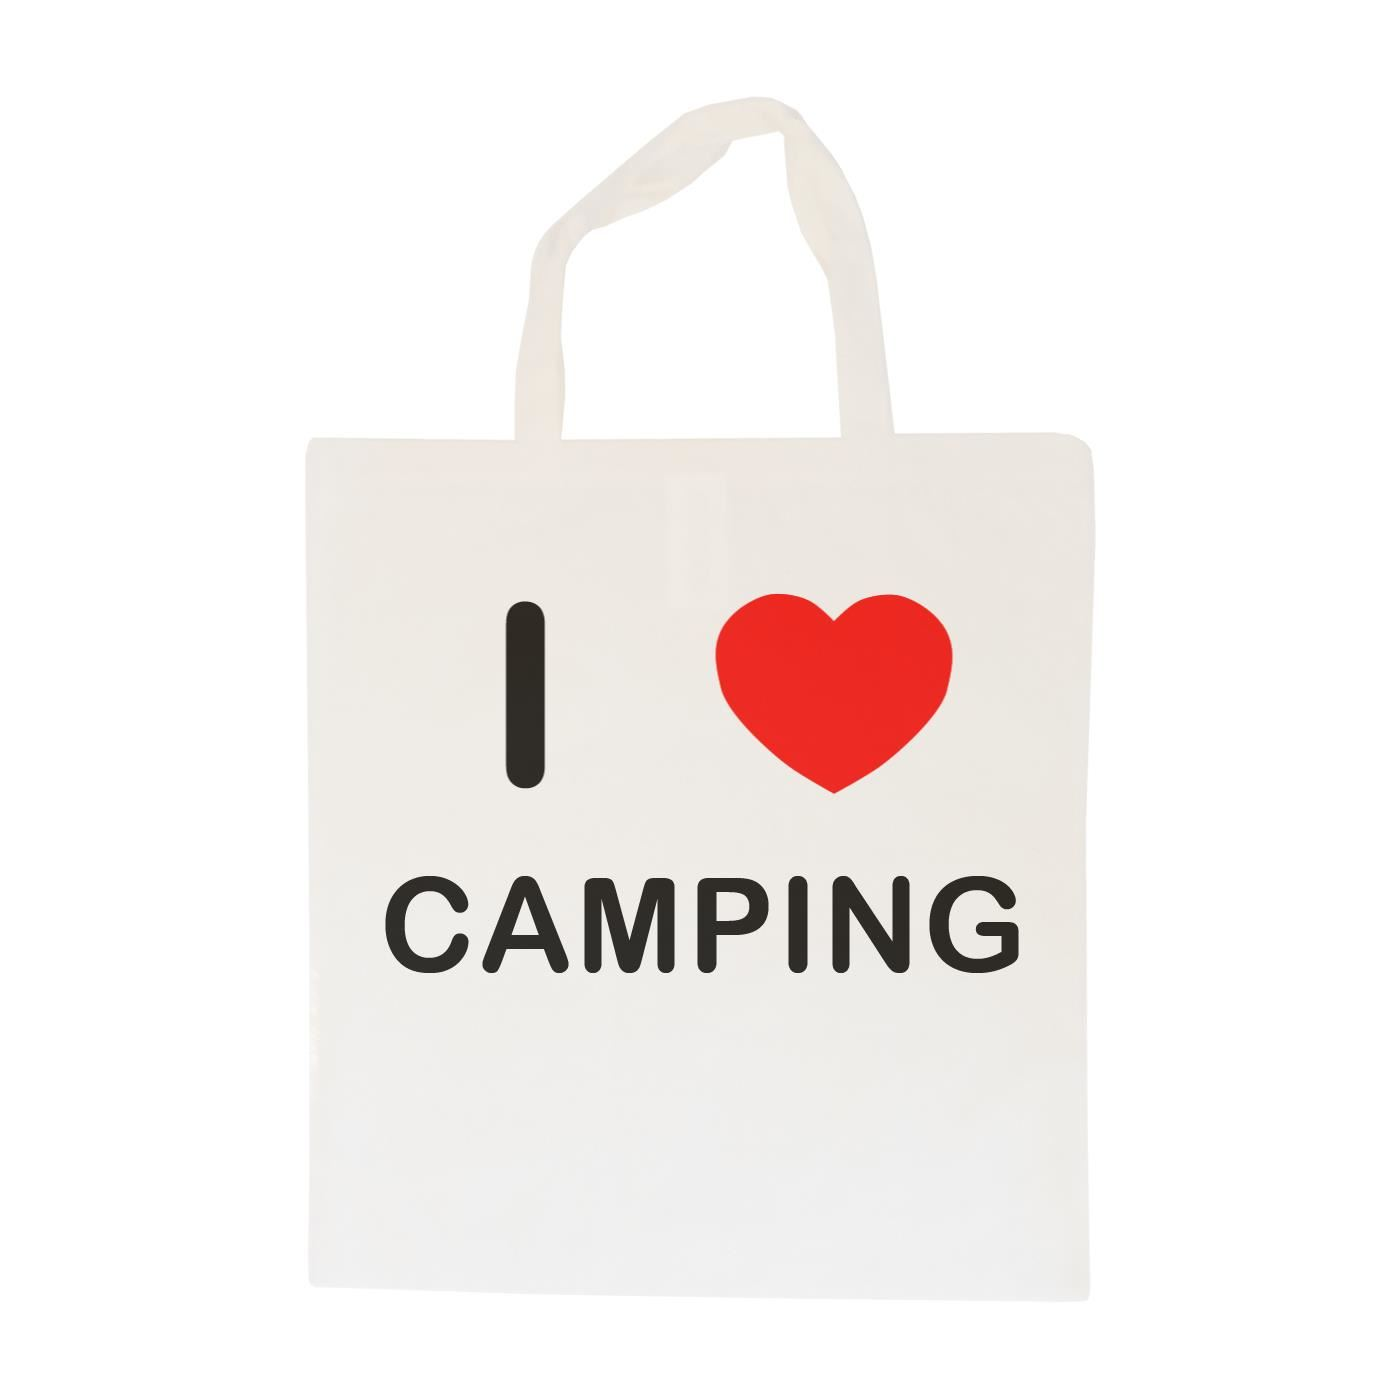 I Love Camping - Cotton Bag | Size choice Tote, Shopper or Sling